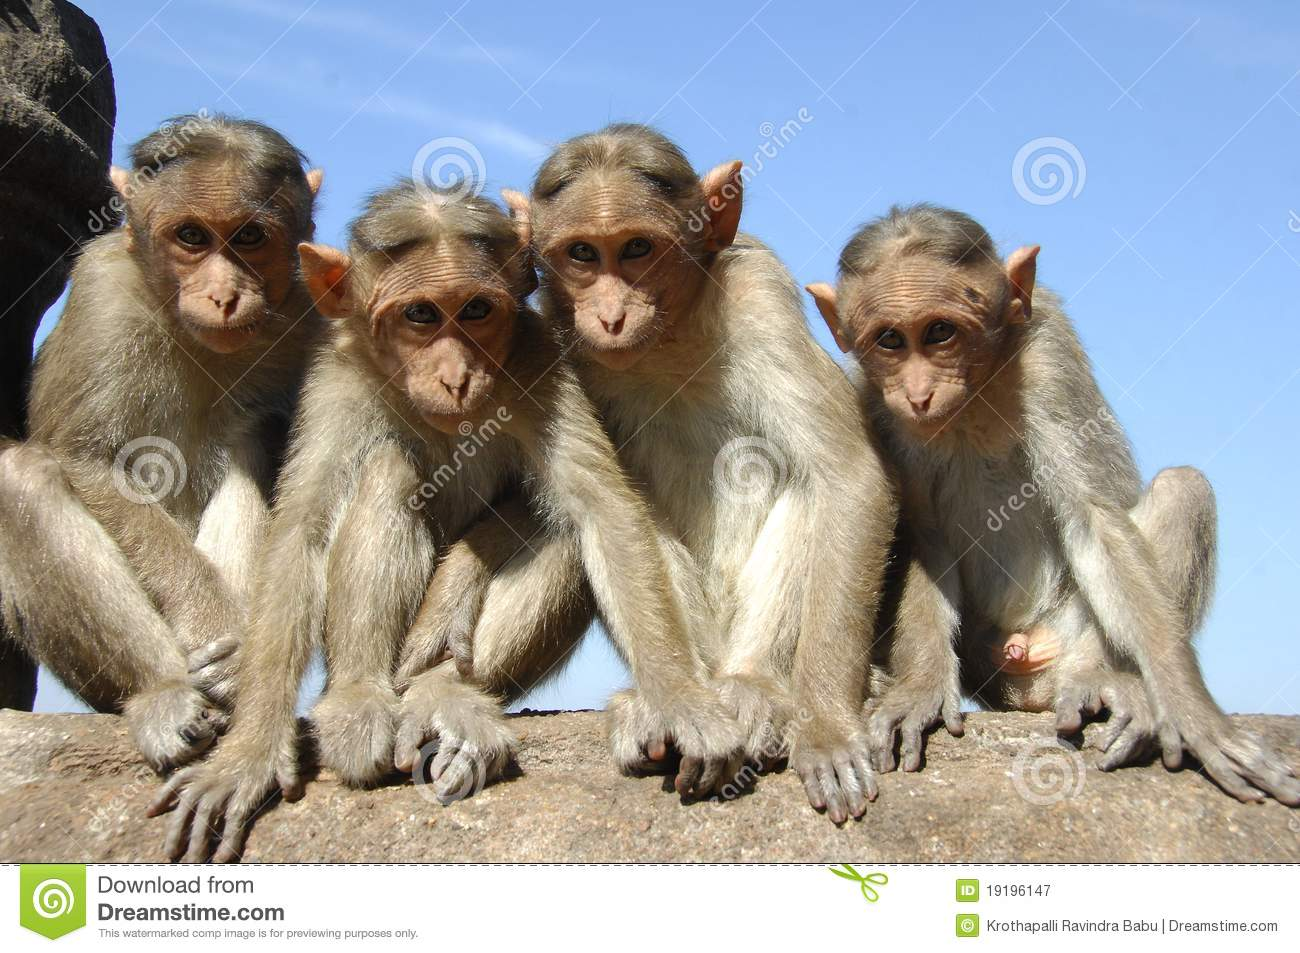 Group of watching monkeys